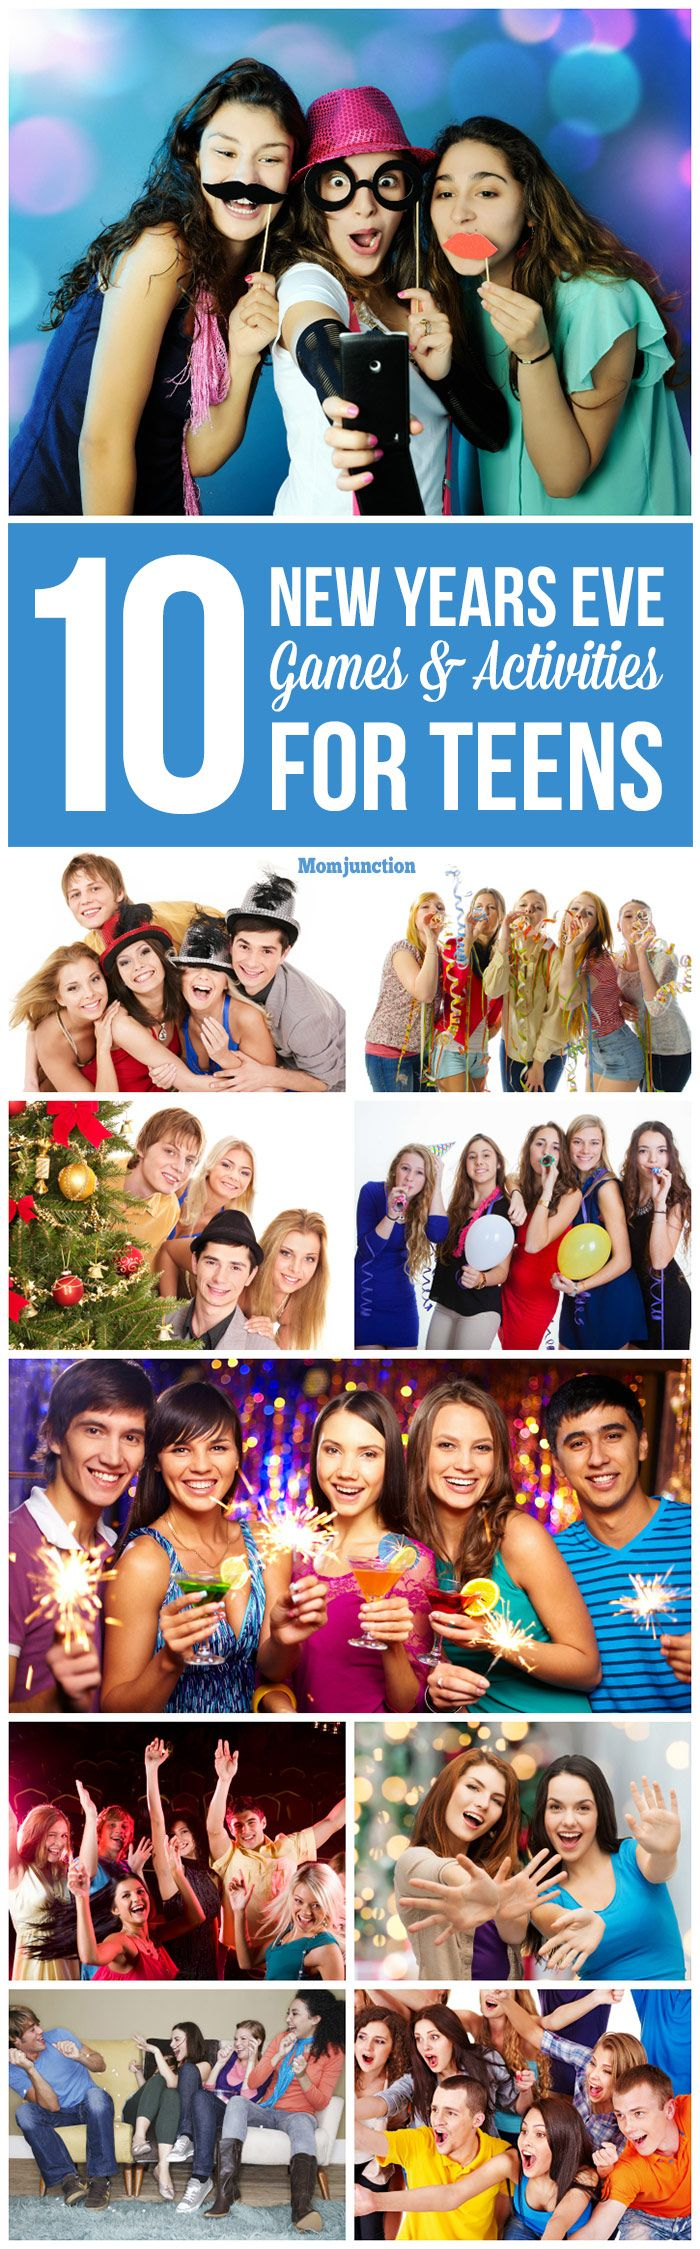 If you are hosting a New Year's party for your teen and are looking for some New Years Eve games for teens, then you have come to the right place.